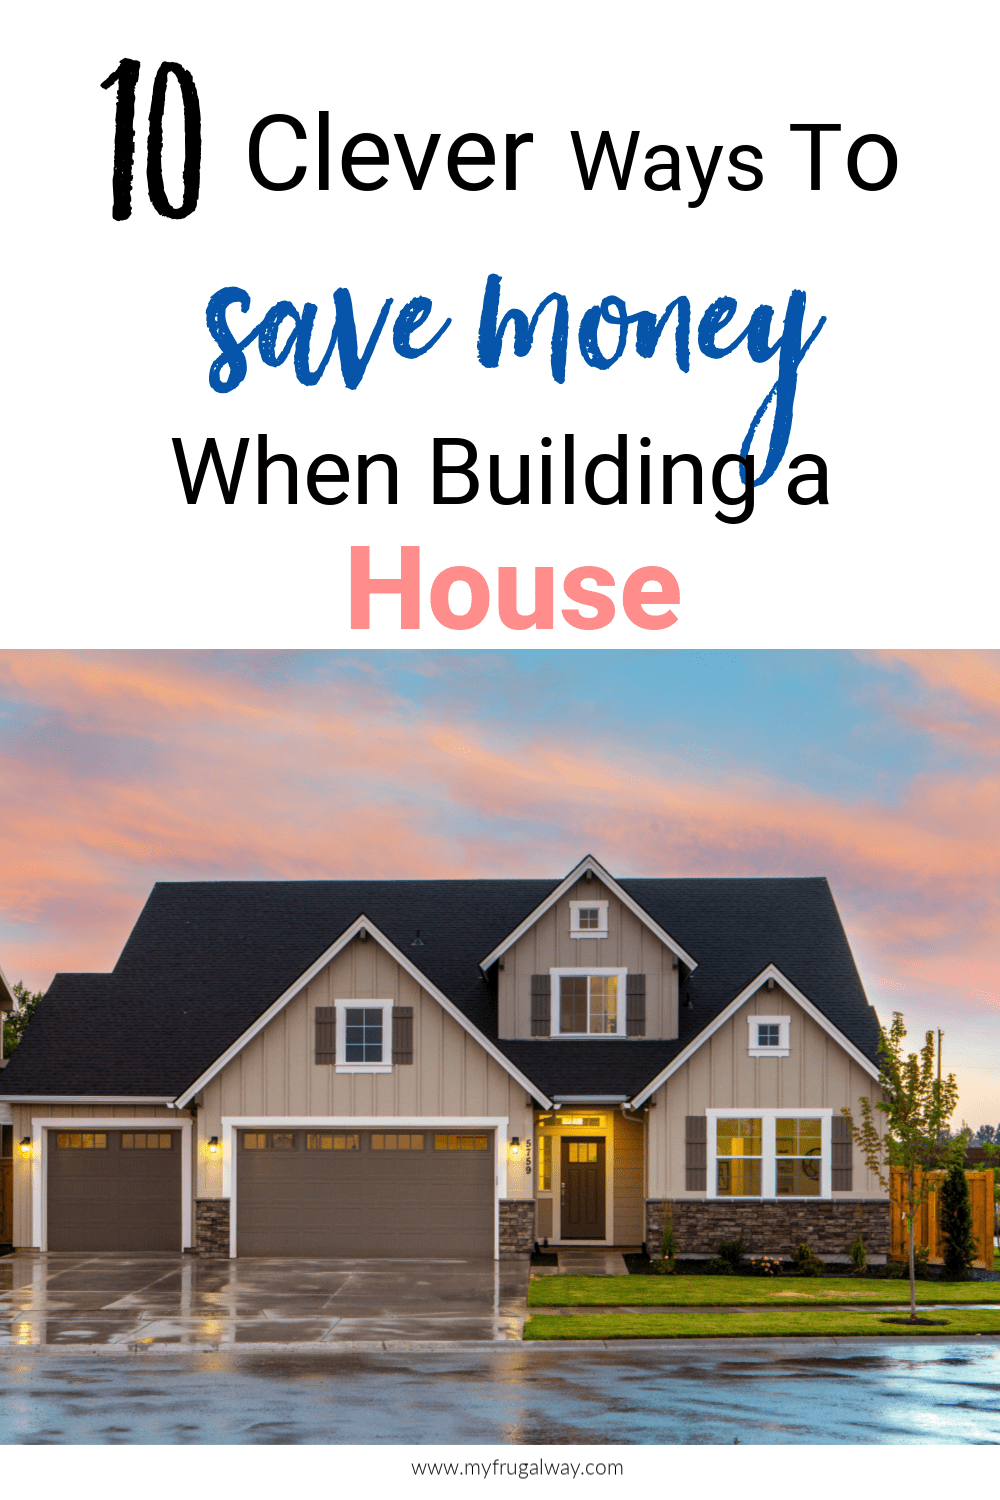 Money saving tips to help you build your dream home without breaking the bank.